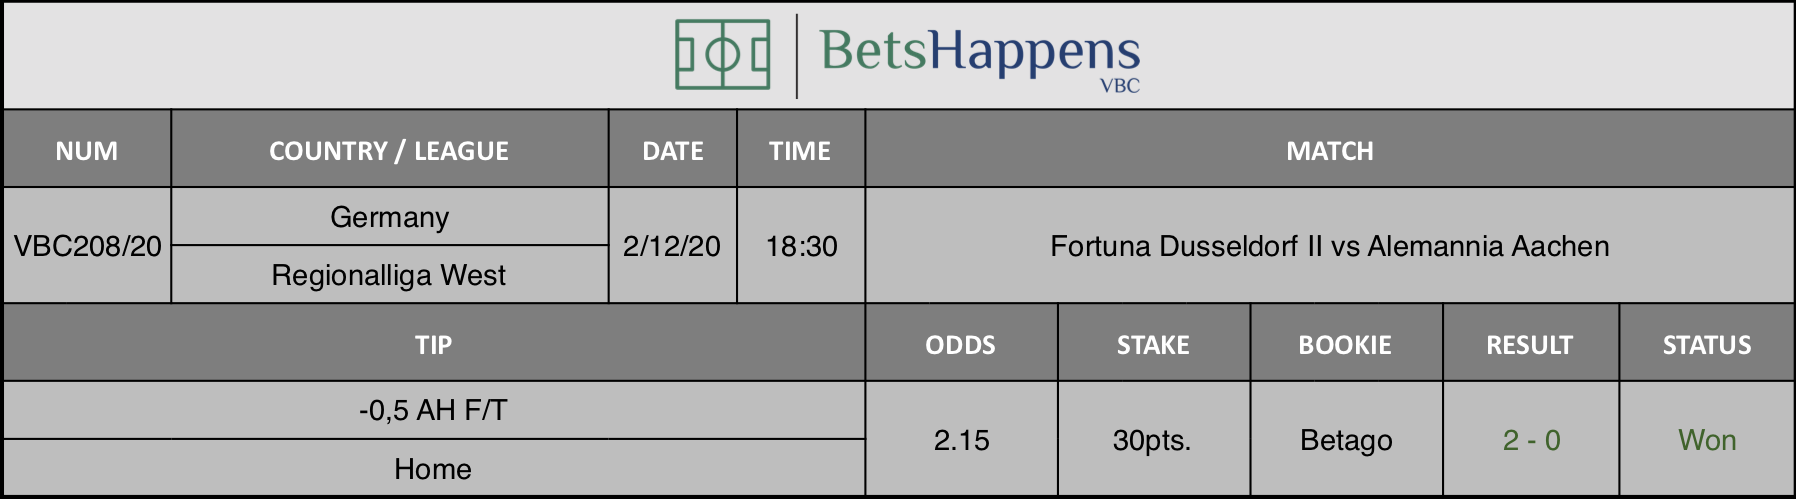 Results of our tip for the Fortuna Dusseldorf II vs Alemannia Aachen match where -0,5 AH F/T Home is recommended.